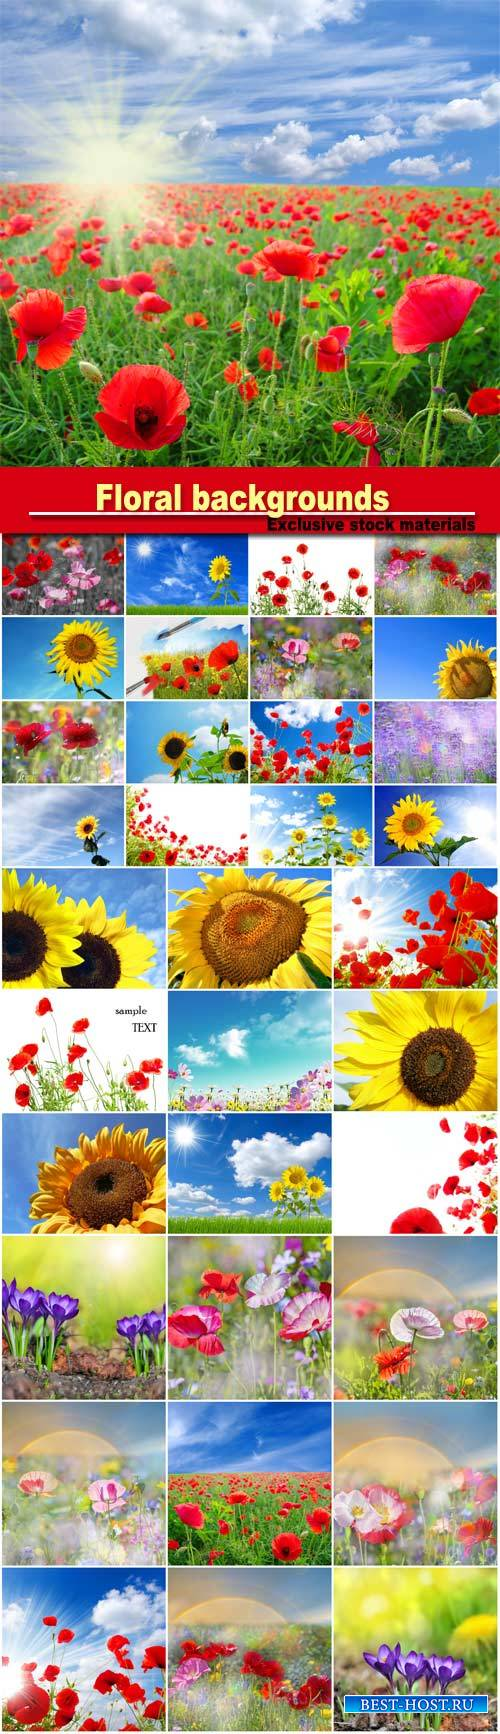 Background with sunflowers and poppies